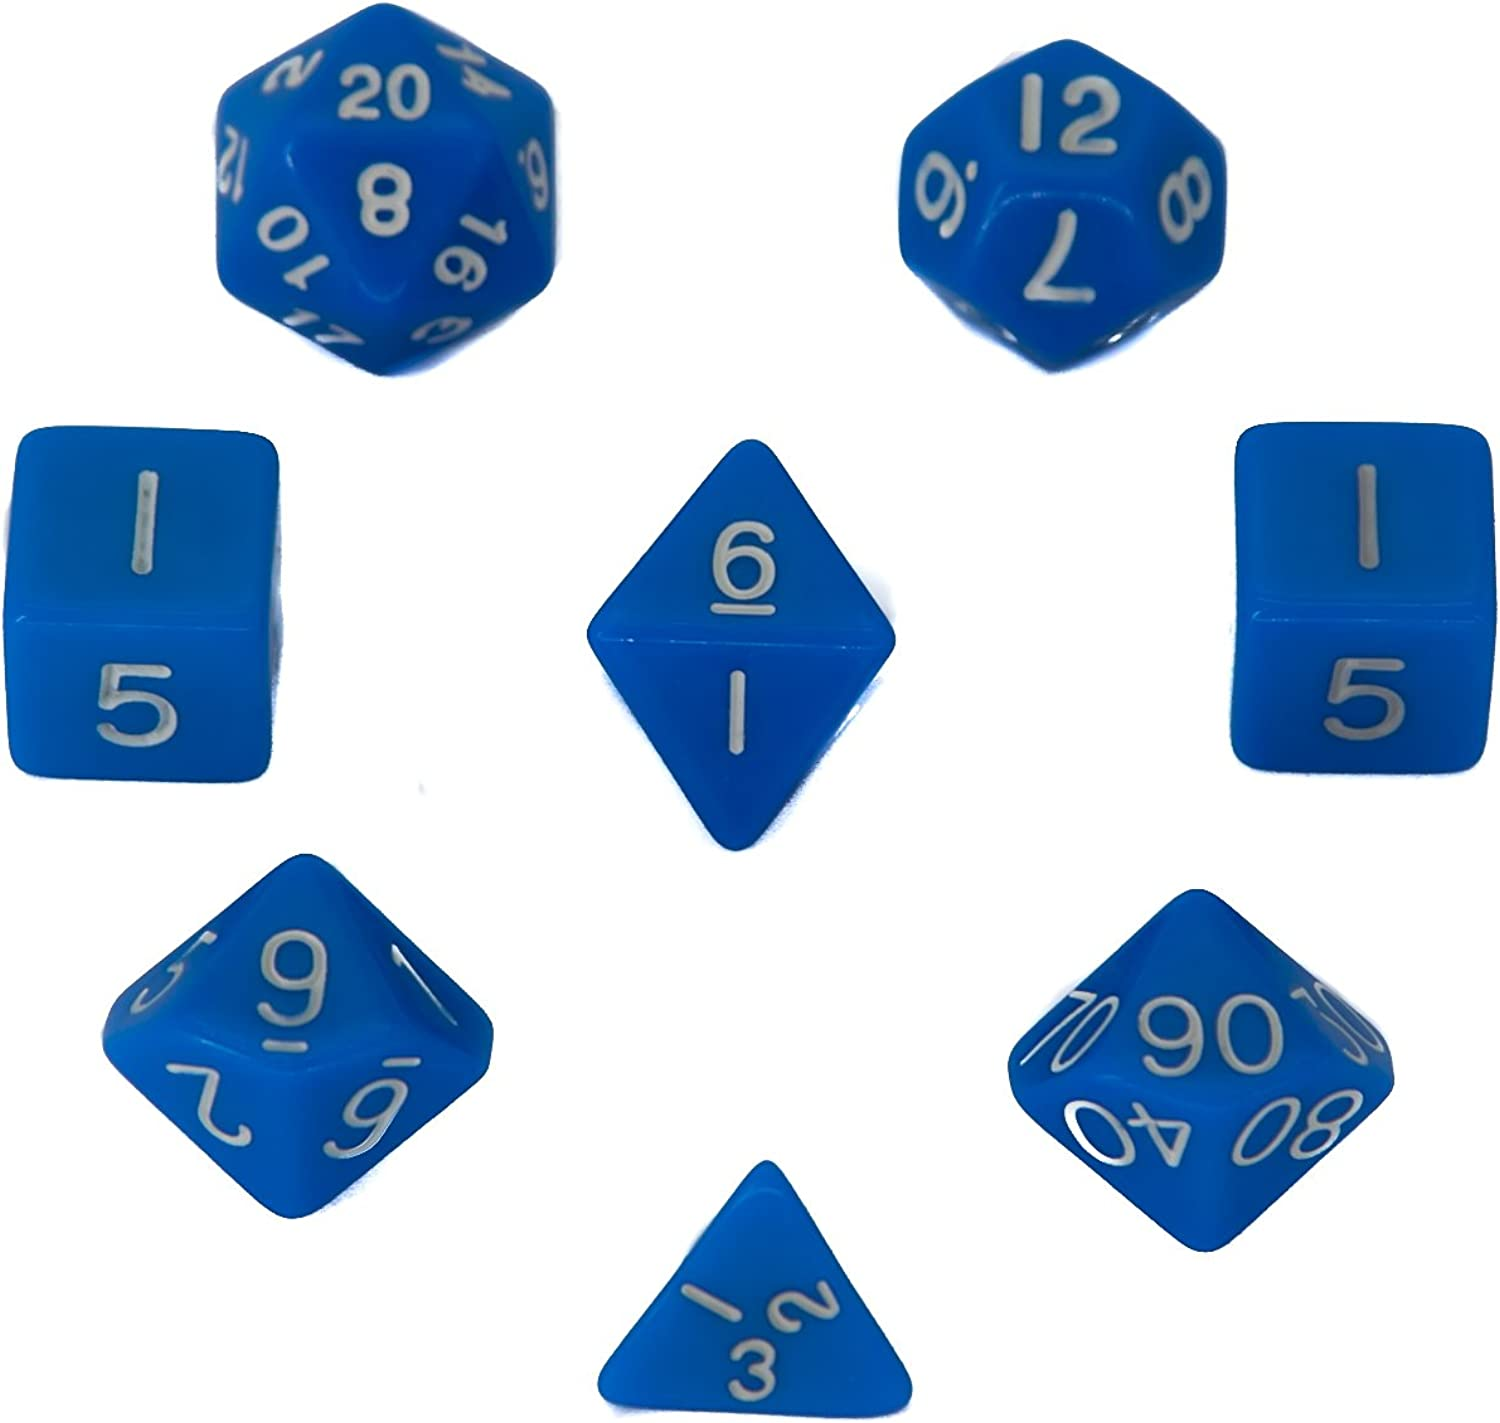 7 + 1 Polyhedral Dice Set - bluee - Opaque - For RPG, Roleplaying Games - D4, D6, D8, D10, D12, D20 Sided Dices with Velvet Bag - By Aras.Games